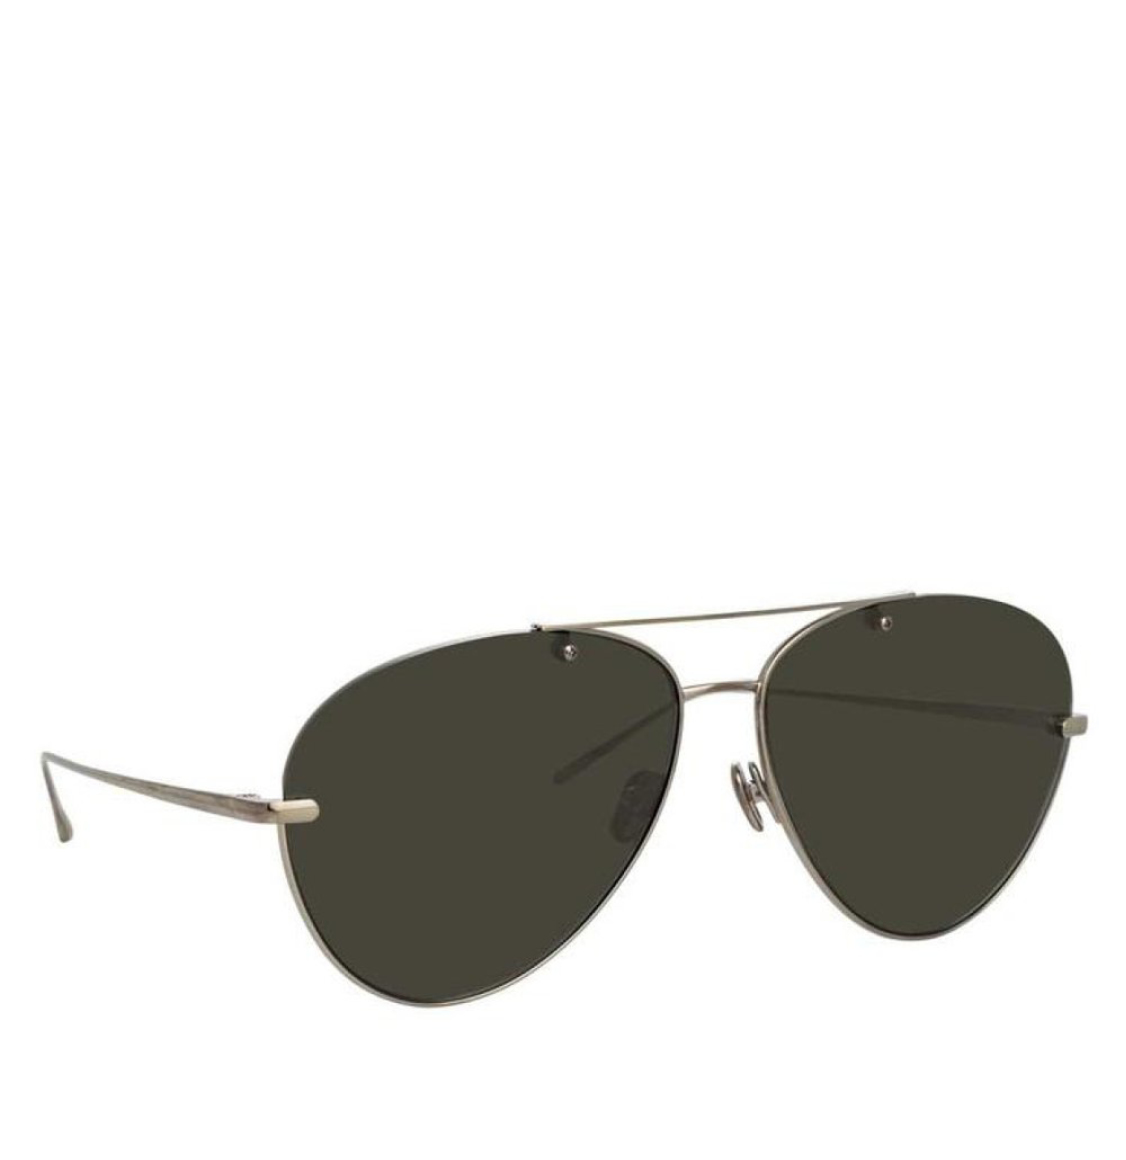 Linda Farrow 859 C7 Aviator White Gold-Plated 66 Γυαλιά Ηλίου